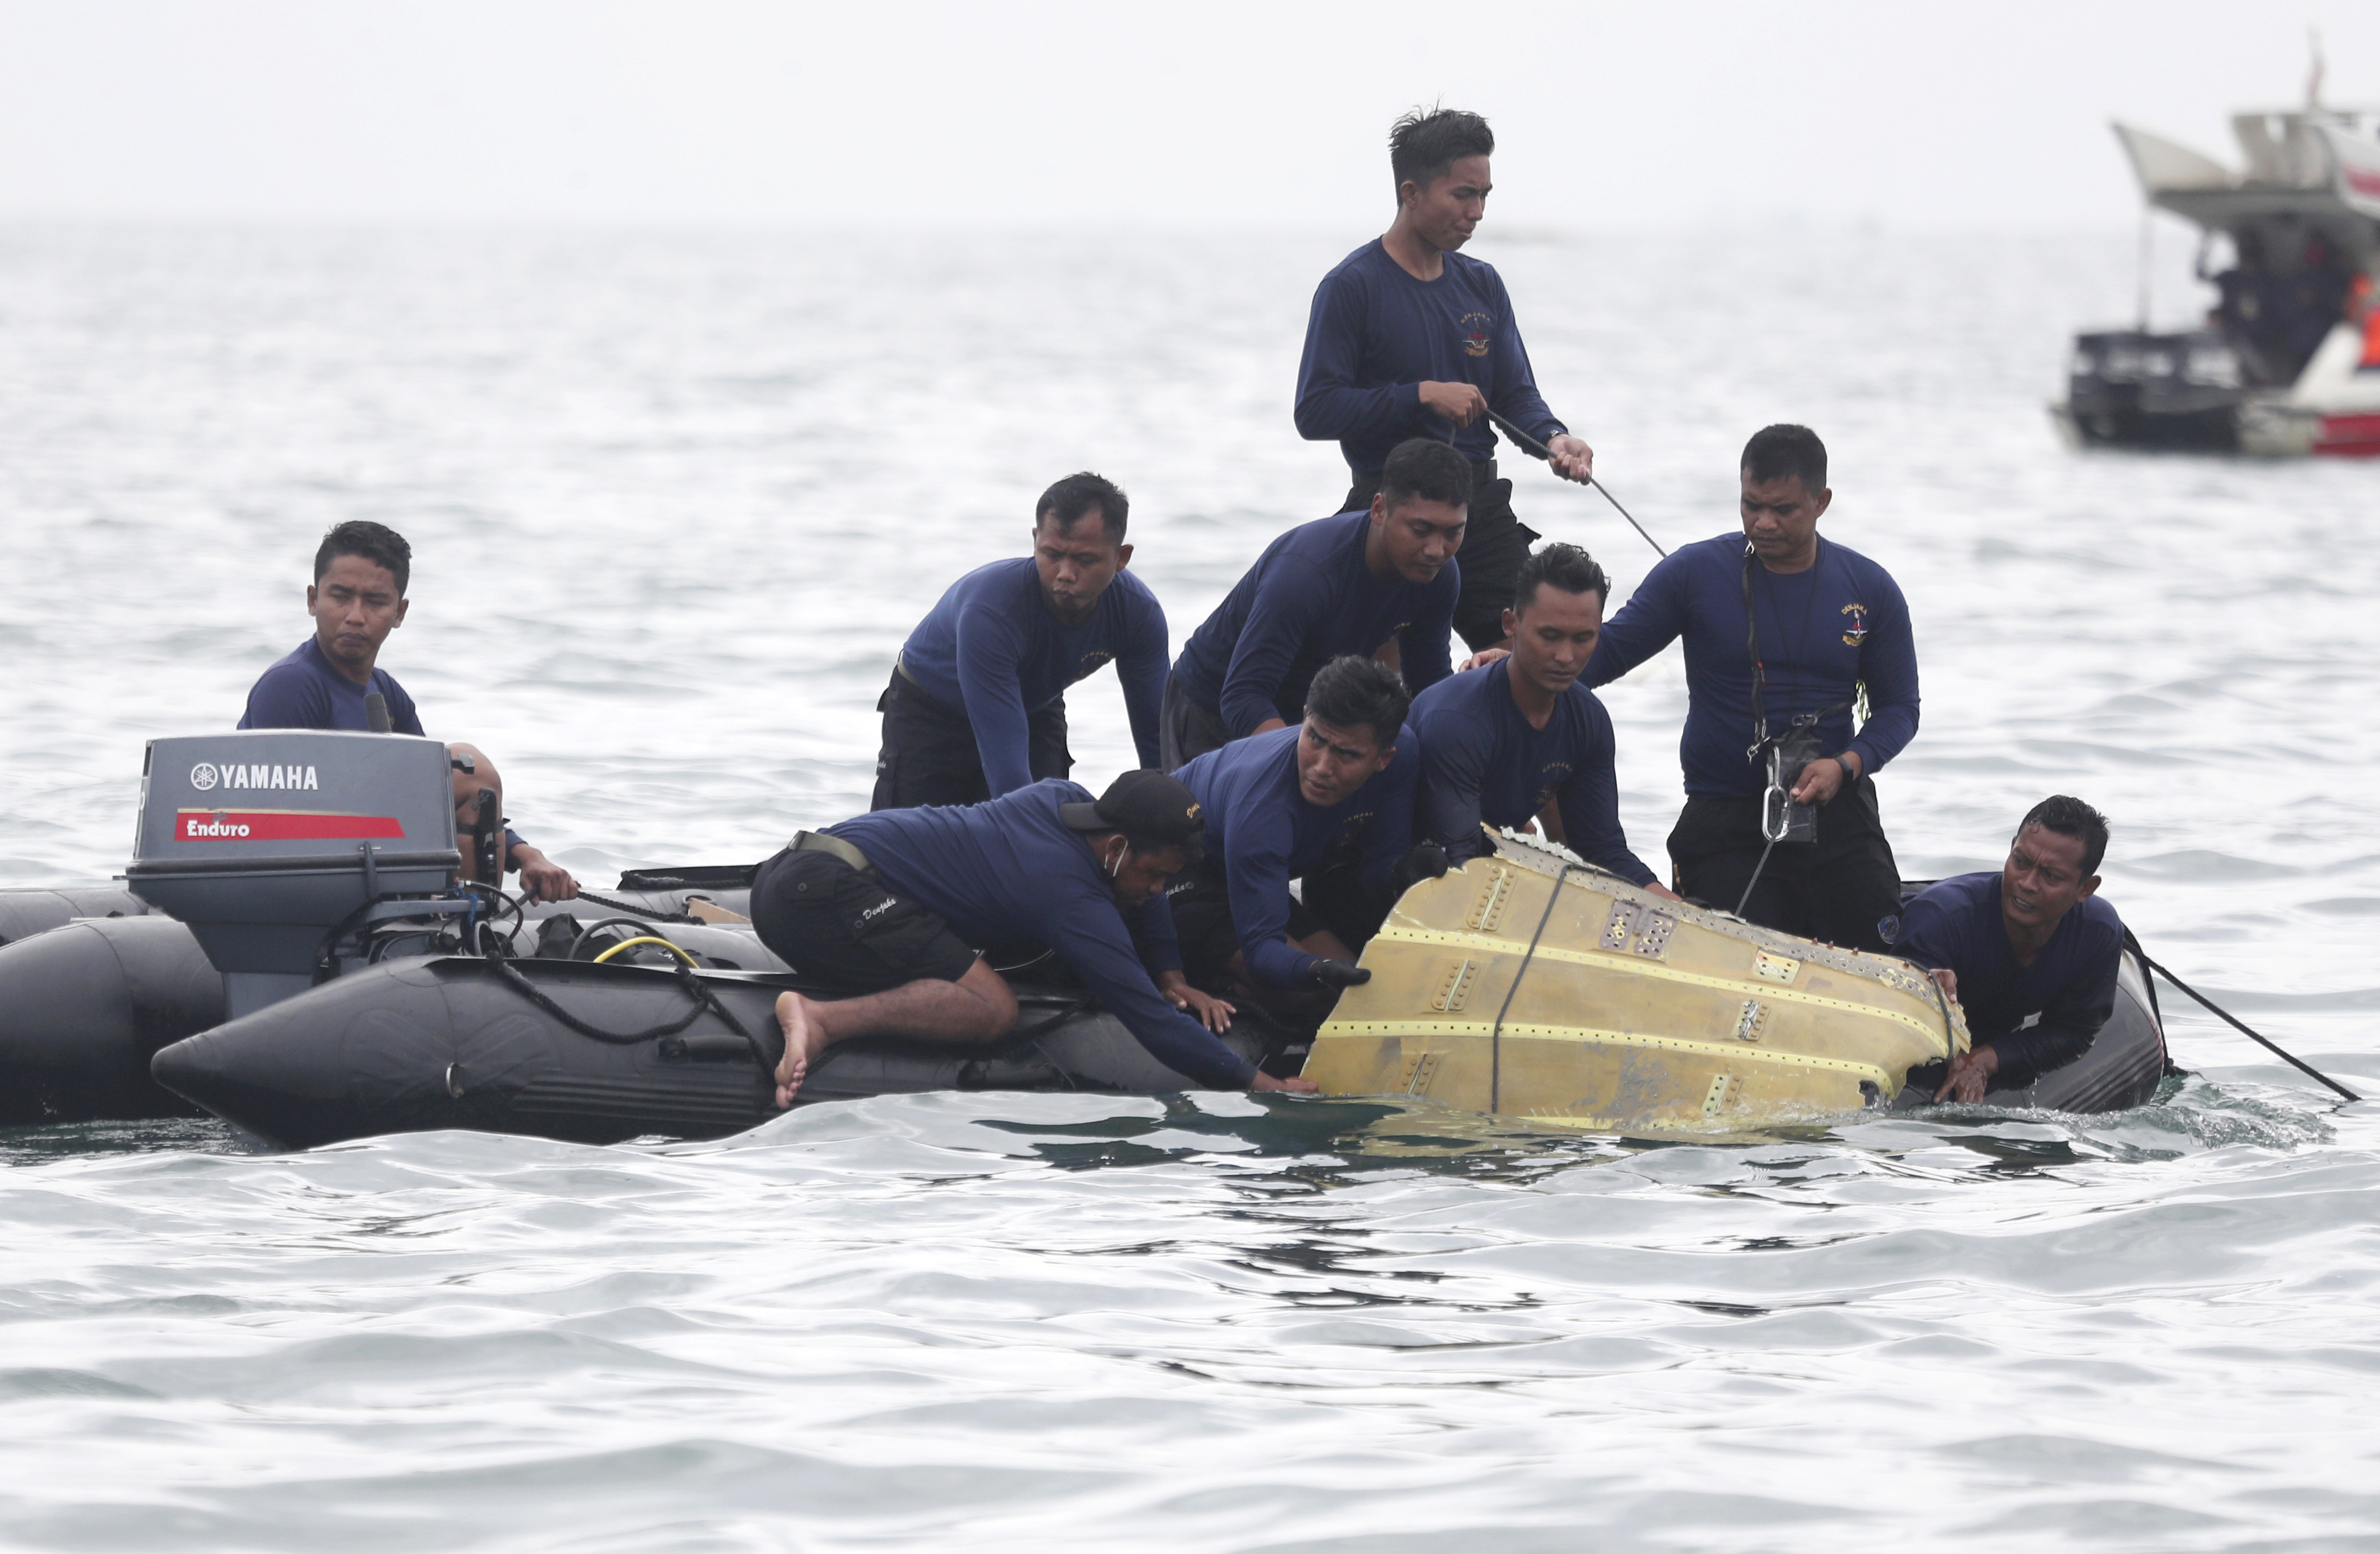 Indonesian Navy divers pull out a part of an airplane out of the water during a search operation for the Sriwijaya Air passenger jet that crashed into the sea near Jakarta, Indonesia, on Jan. 10, 2021.